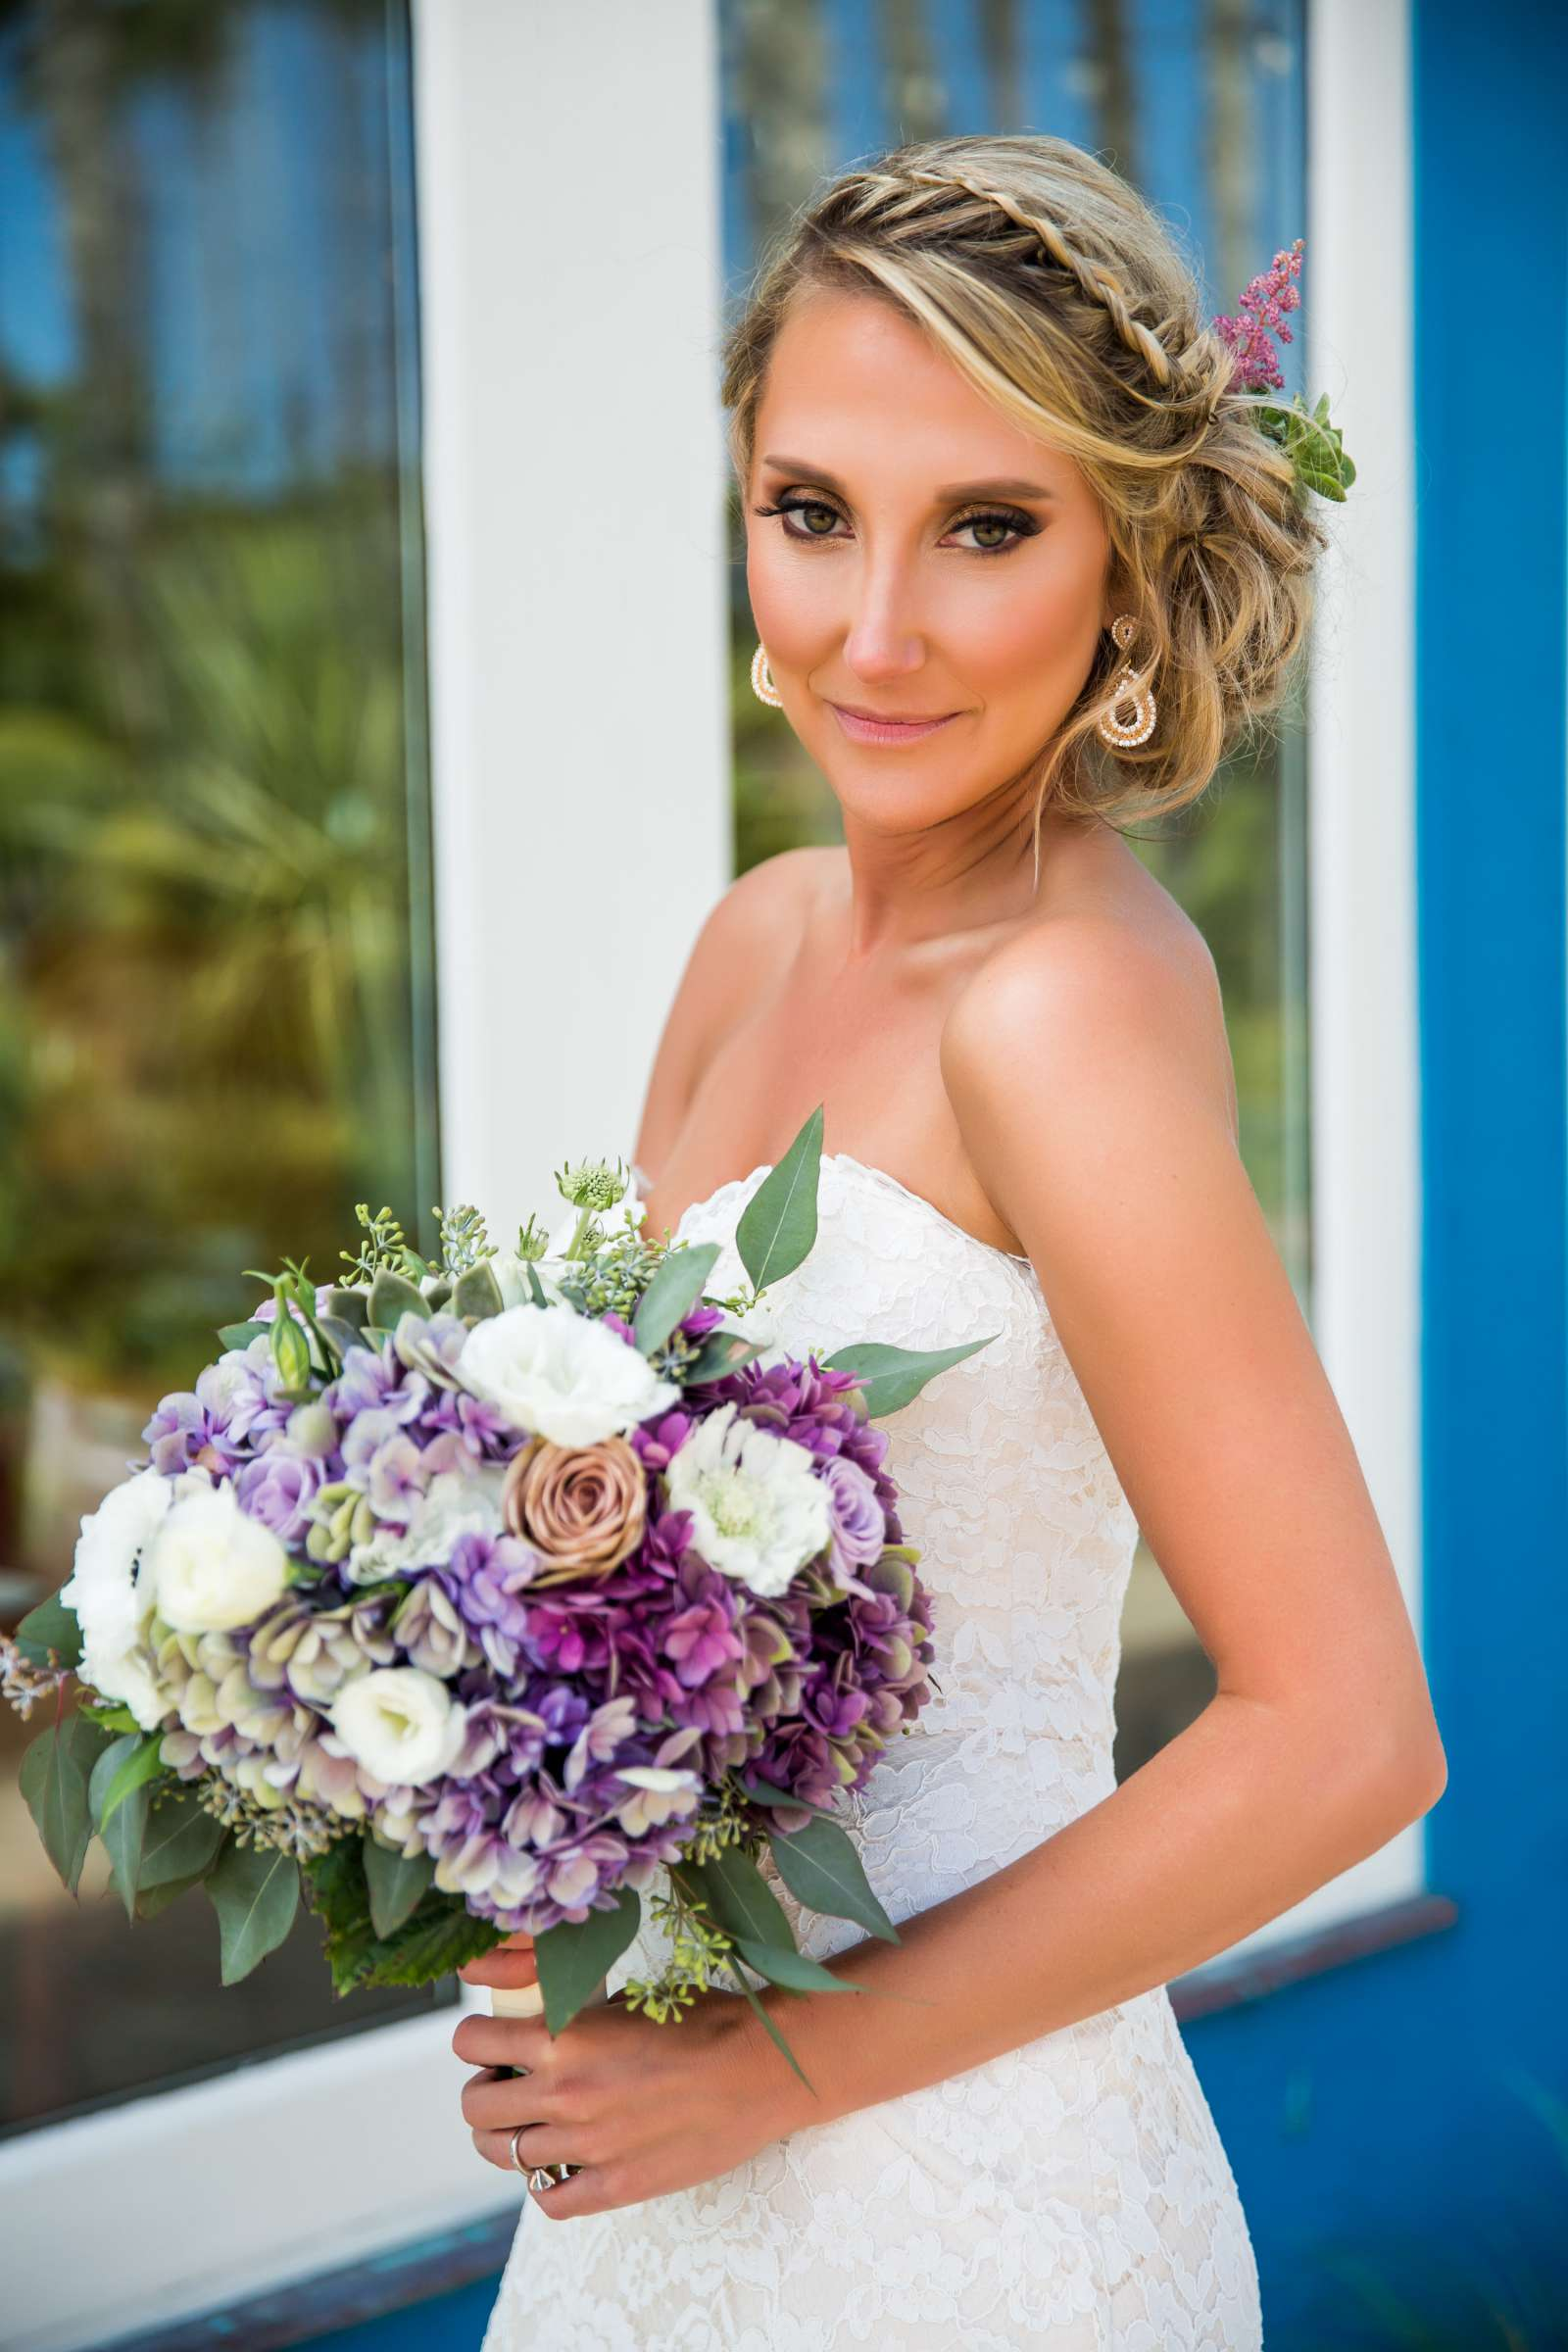 Paradise Point Wedding, Kimberly and Michael Wedding Photo #6 by True Photography